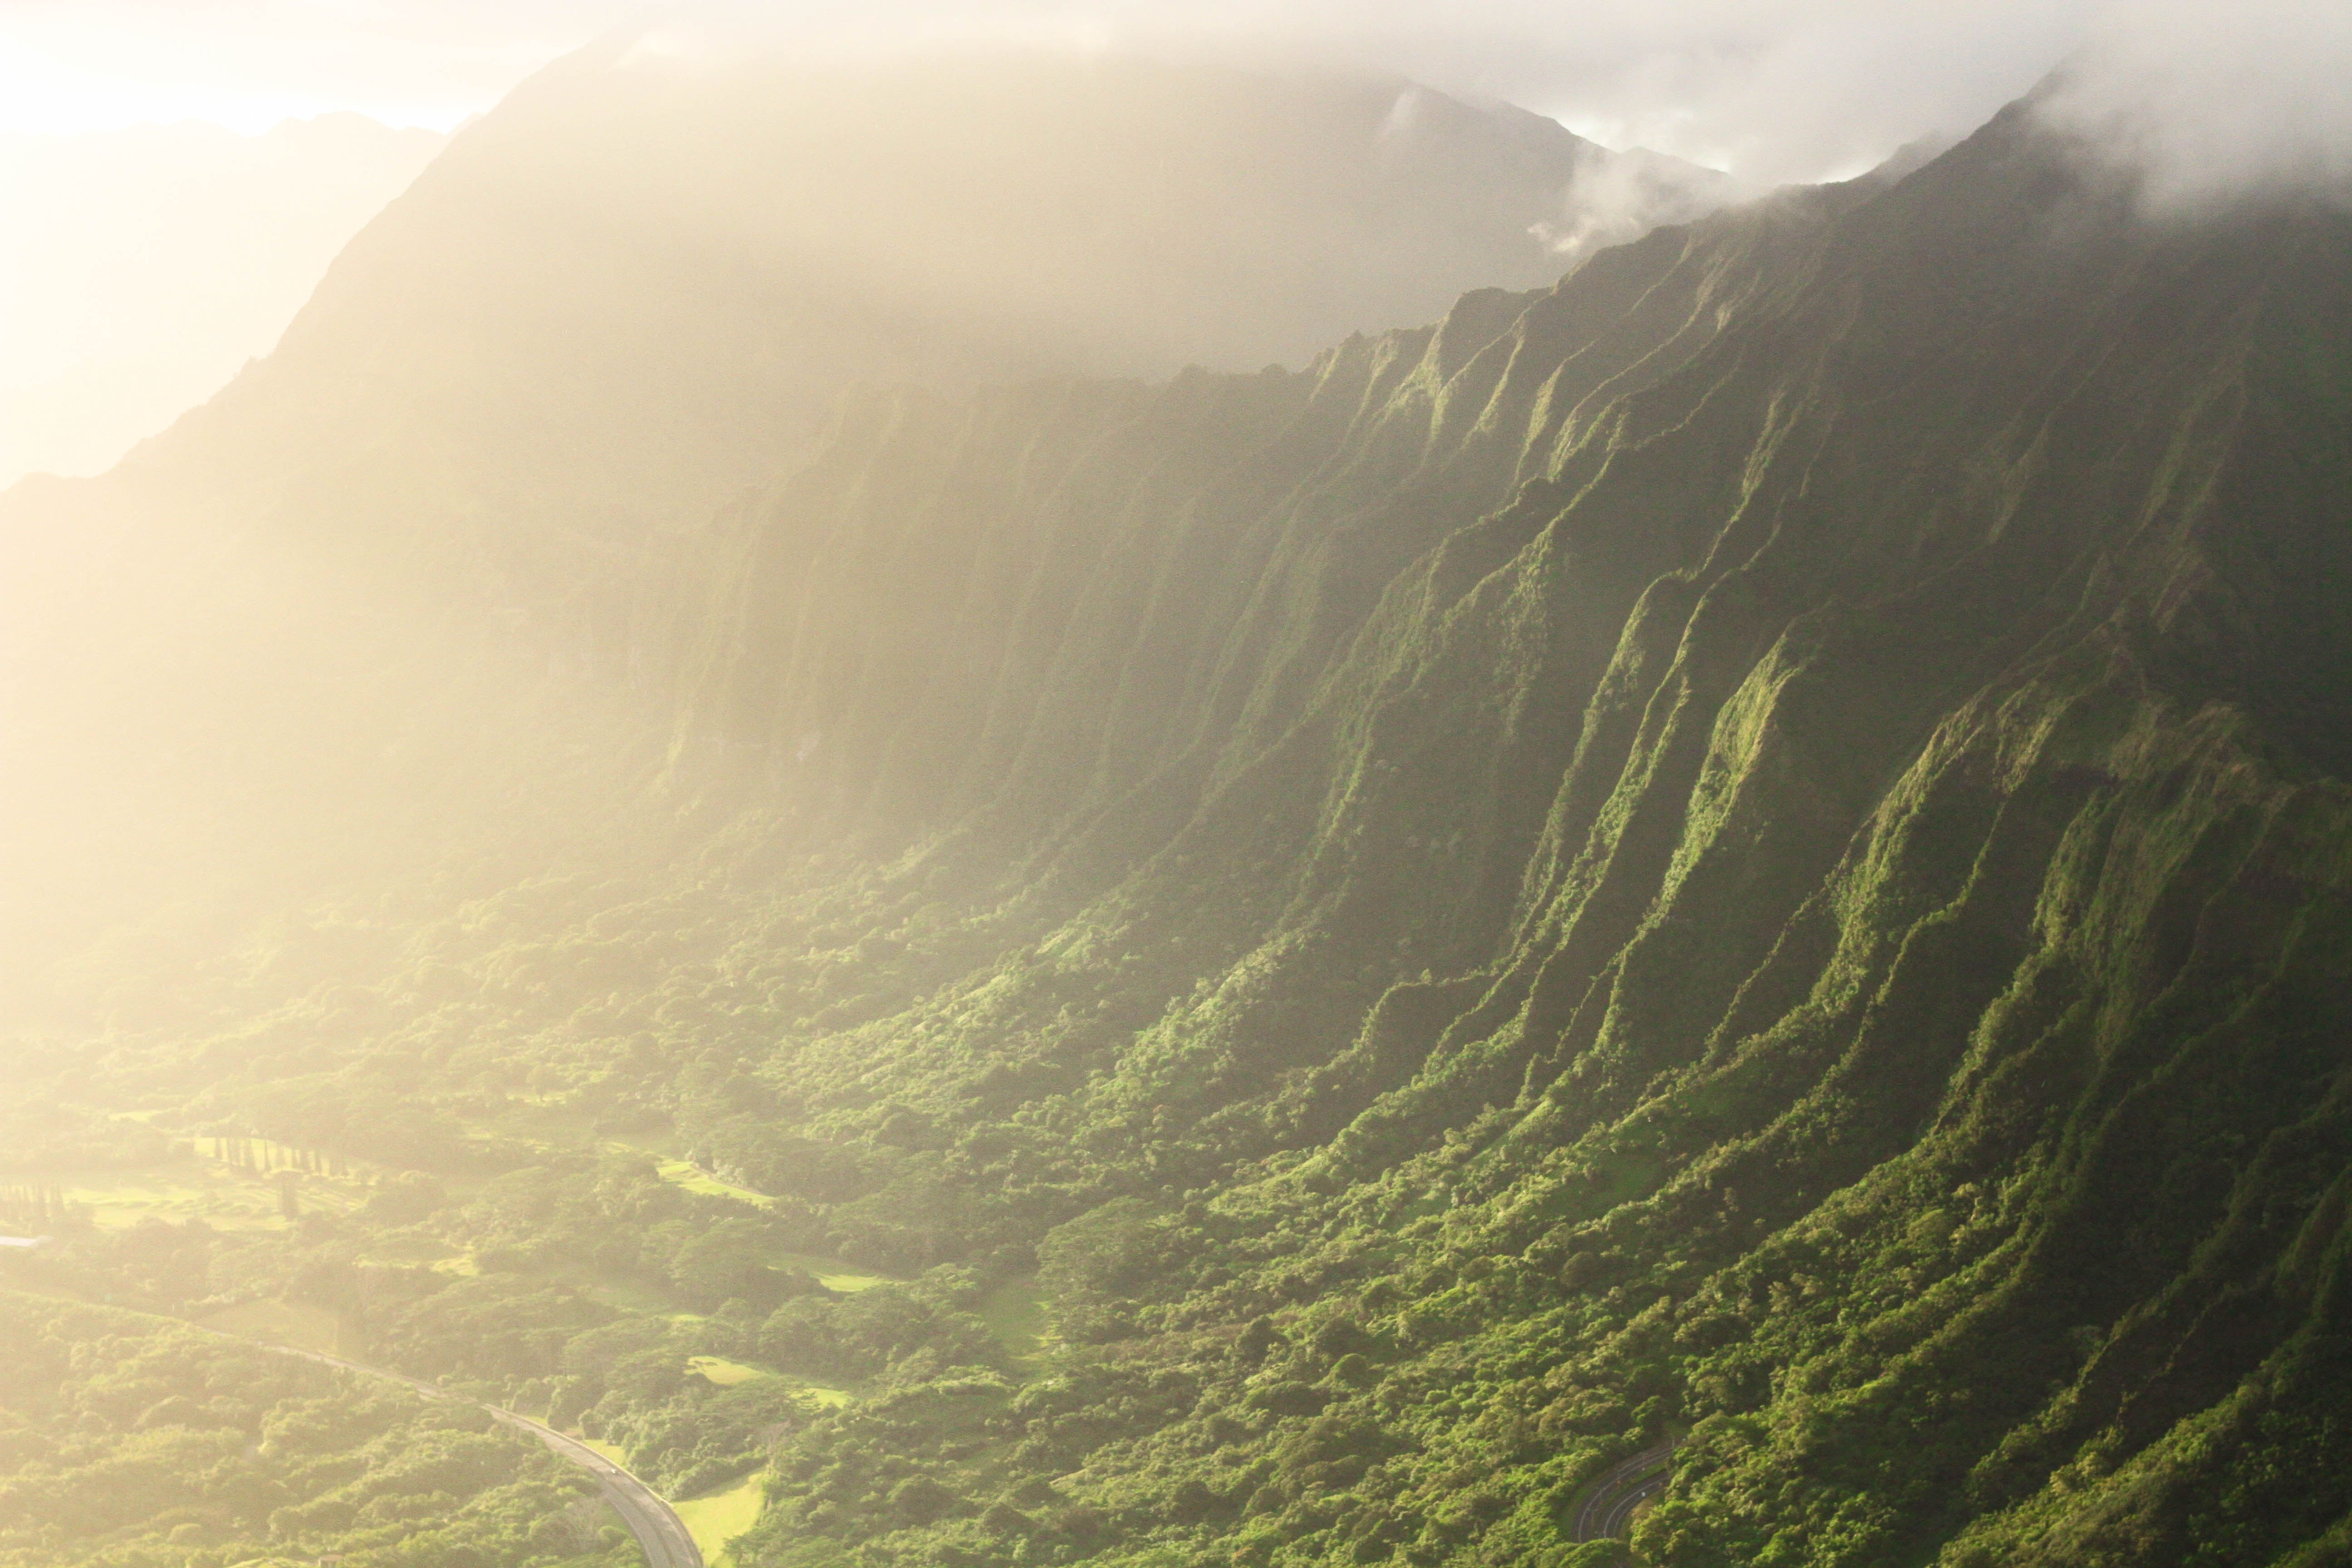 A sunrise over grassy mountains in Hawaii.